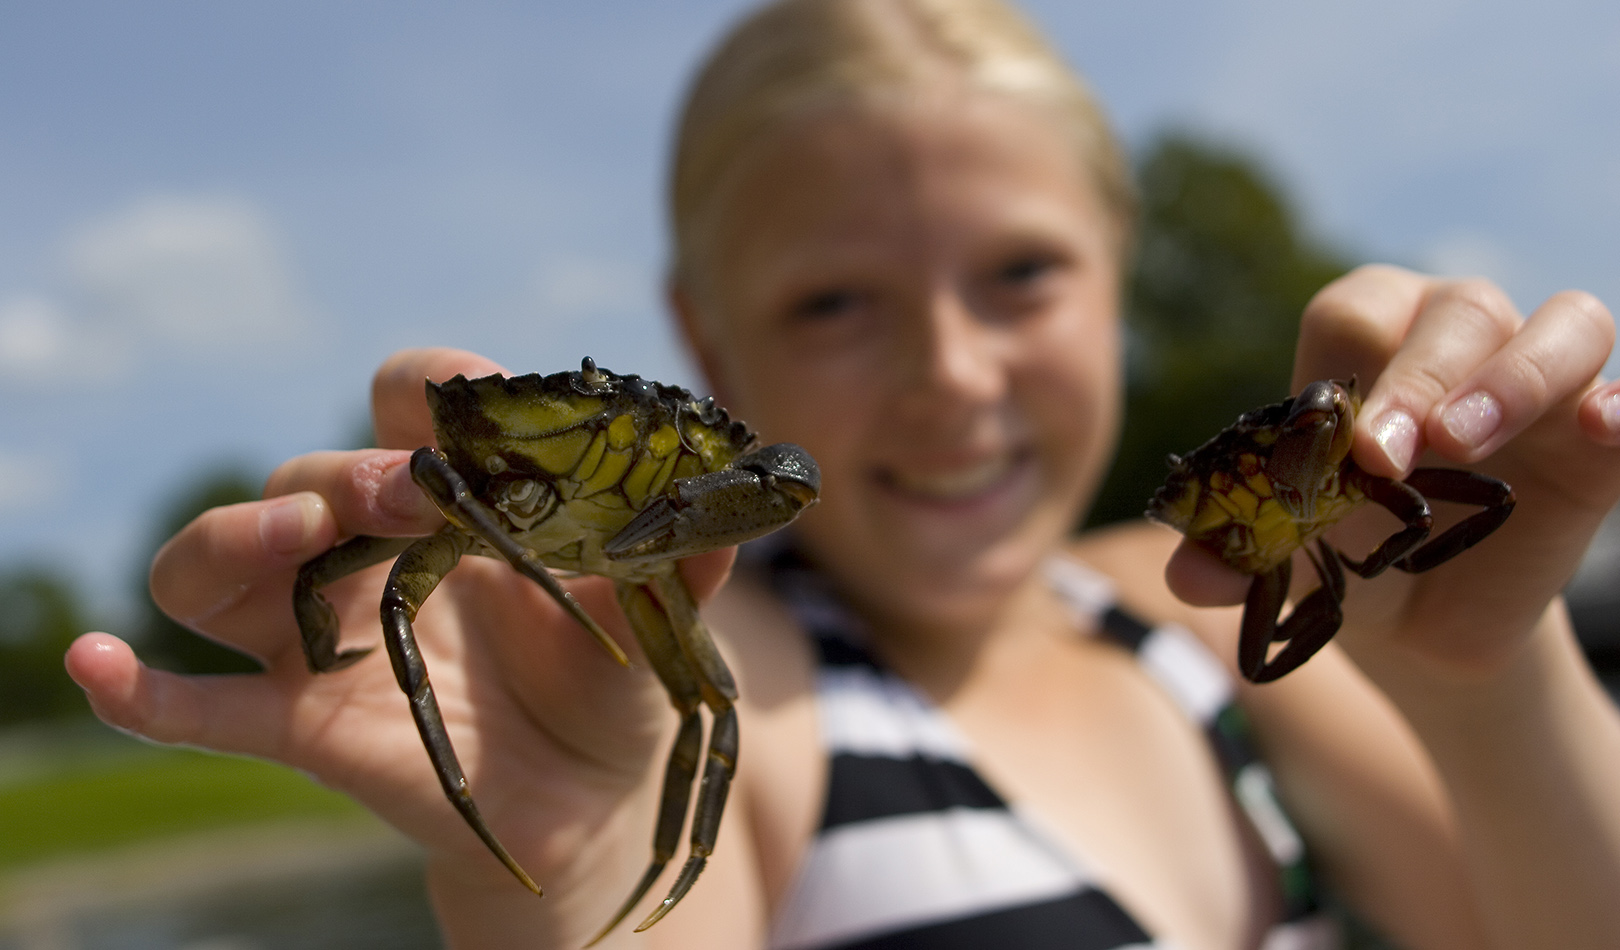 Girl with two small crabs in her hands.